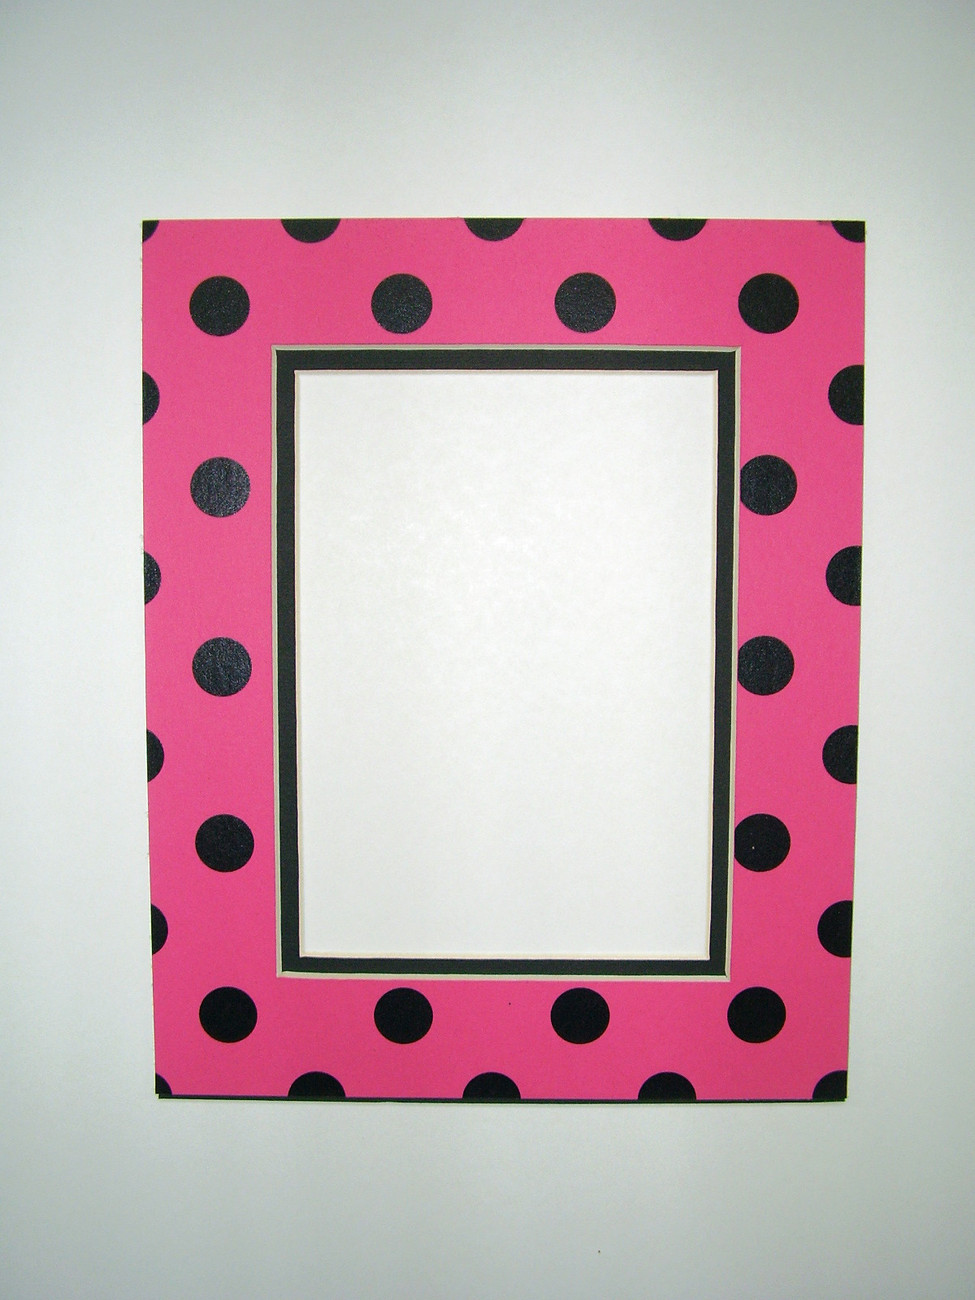 Primary image for Picture Framing Mat 8x10 for 5x7 photo Polka Dot Hot Pink and Black rectangle